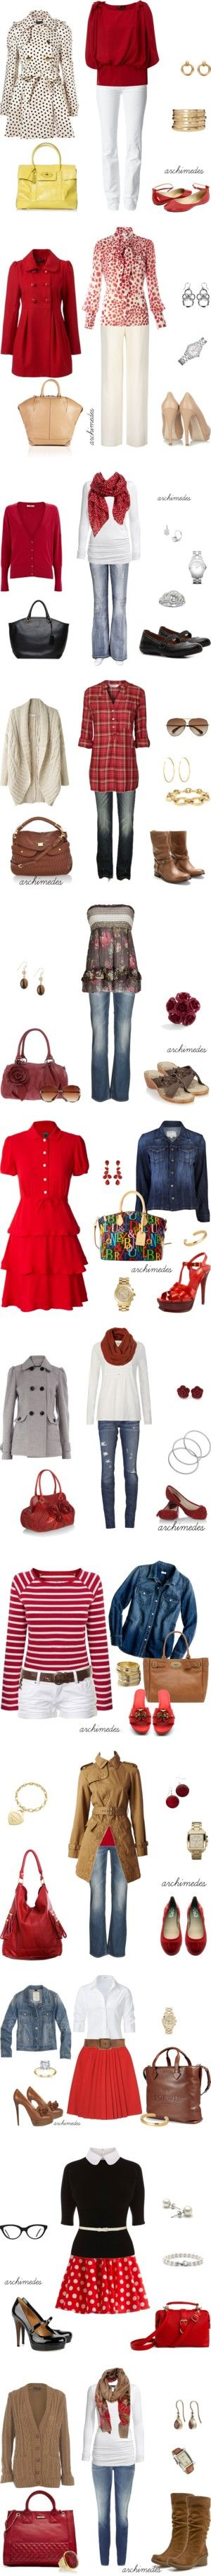 """Red"" by archimedes16 on Polyvore"